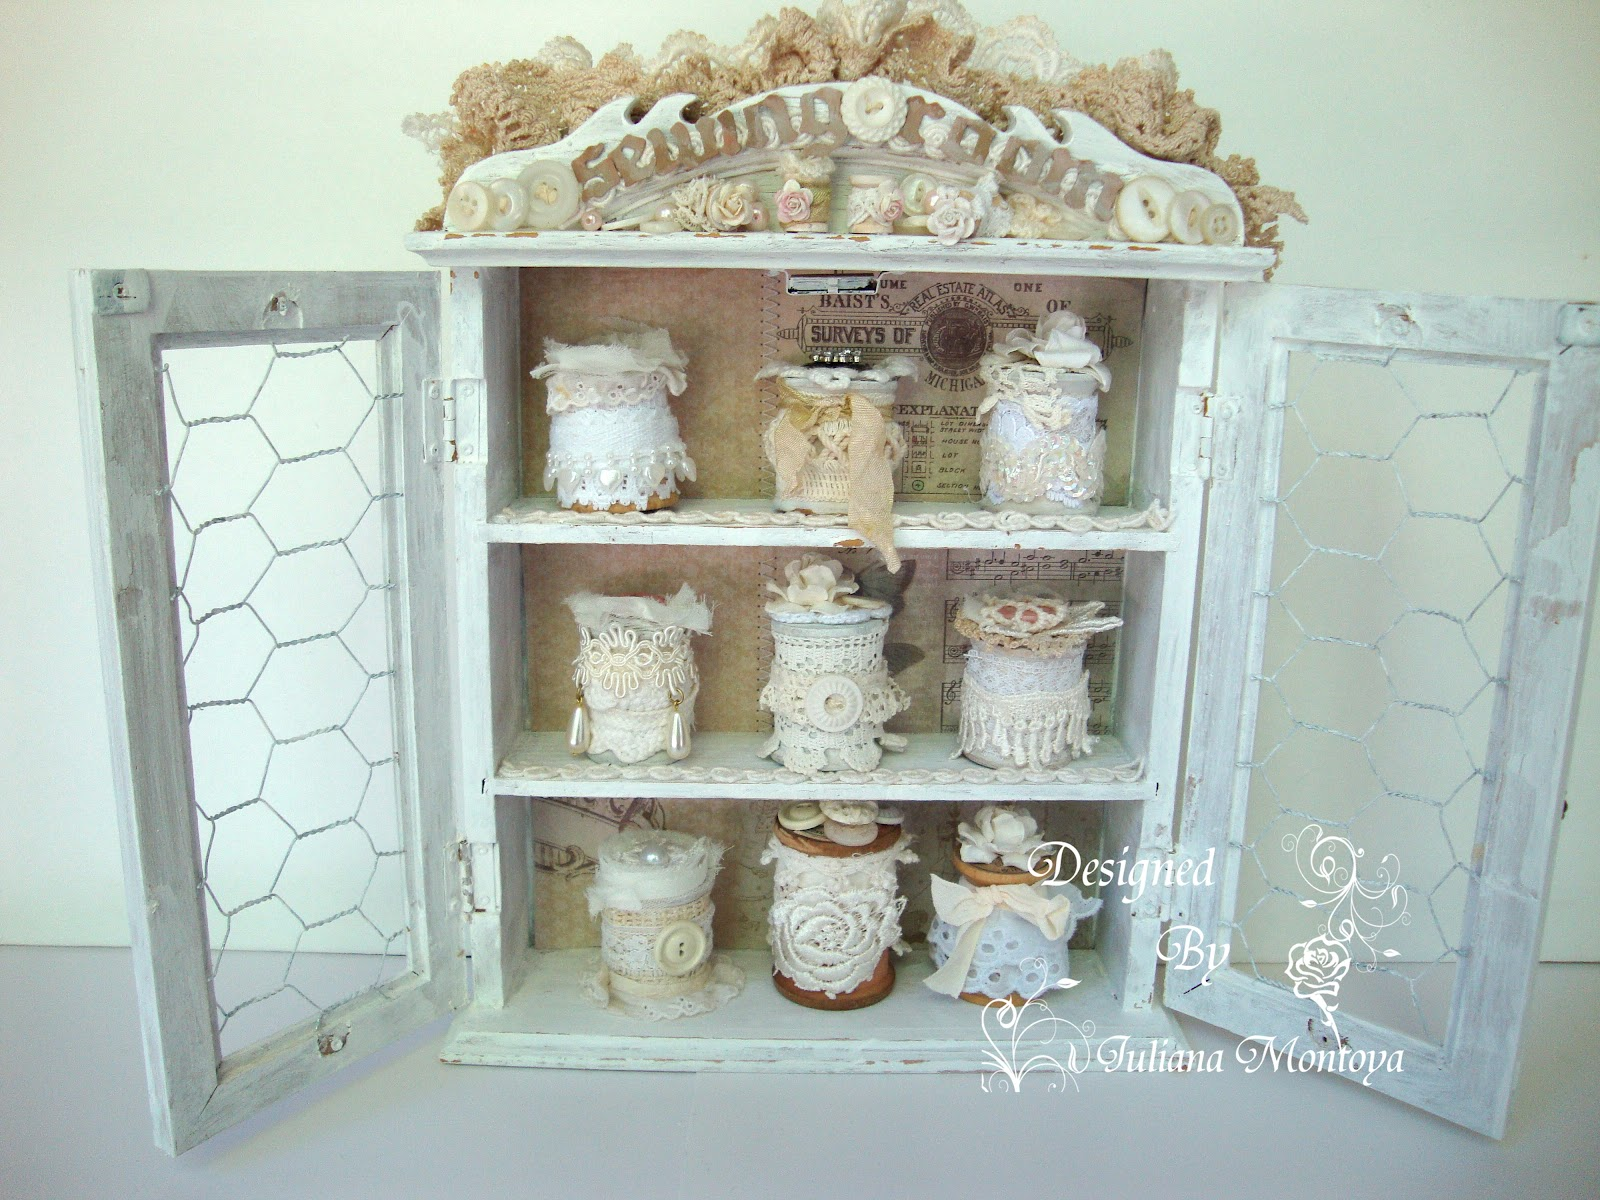 ShabbyChicJCouture : Sewing Room Cabinet - Vintage Shabby Chic